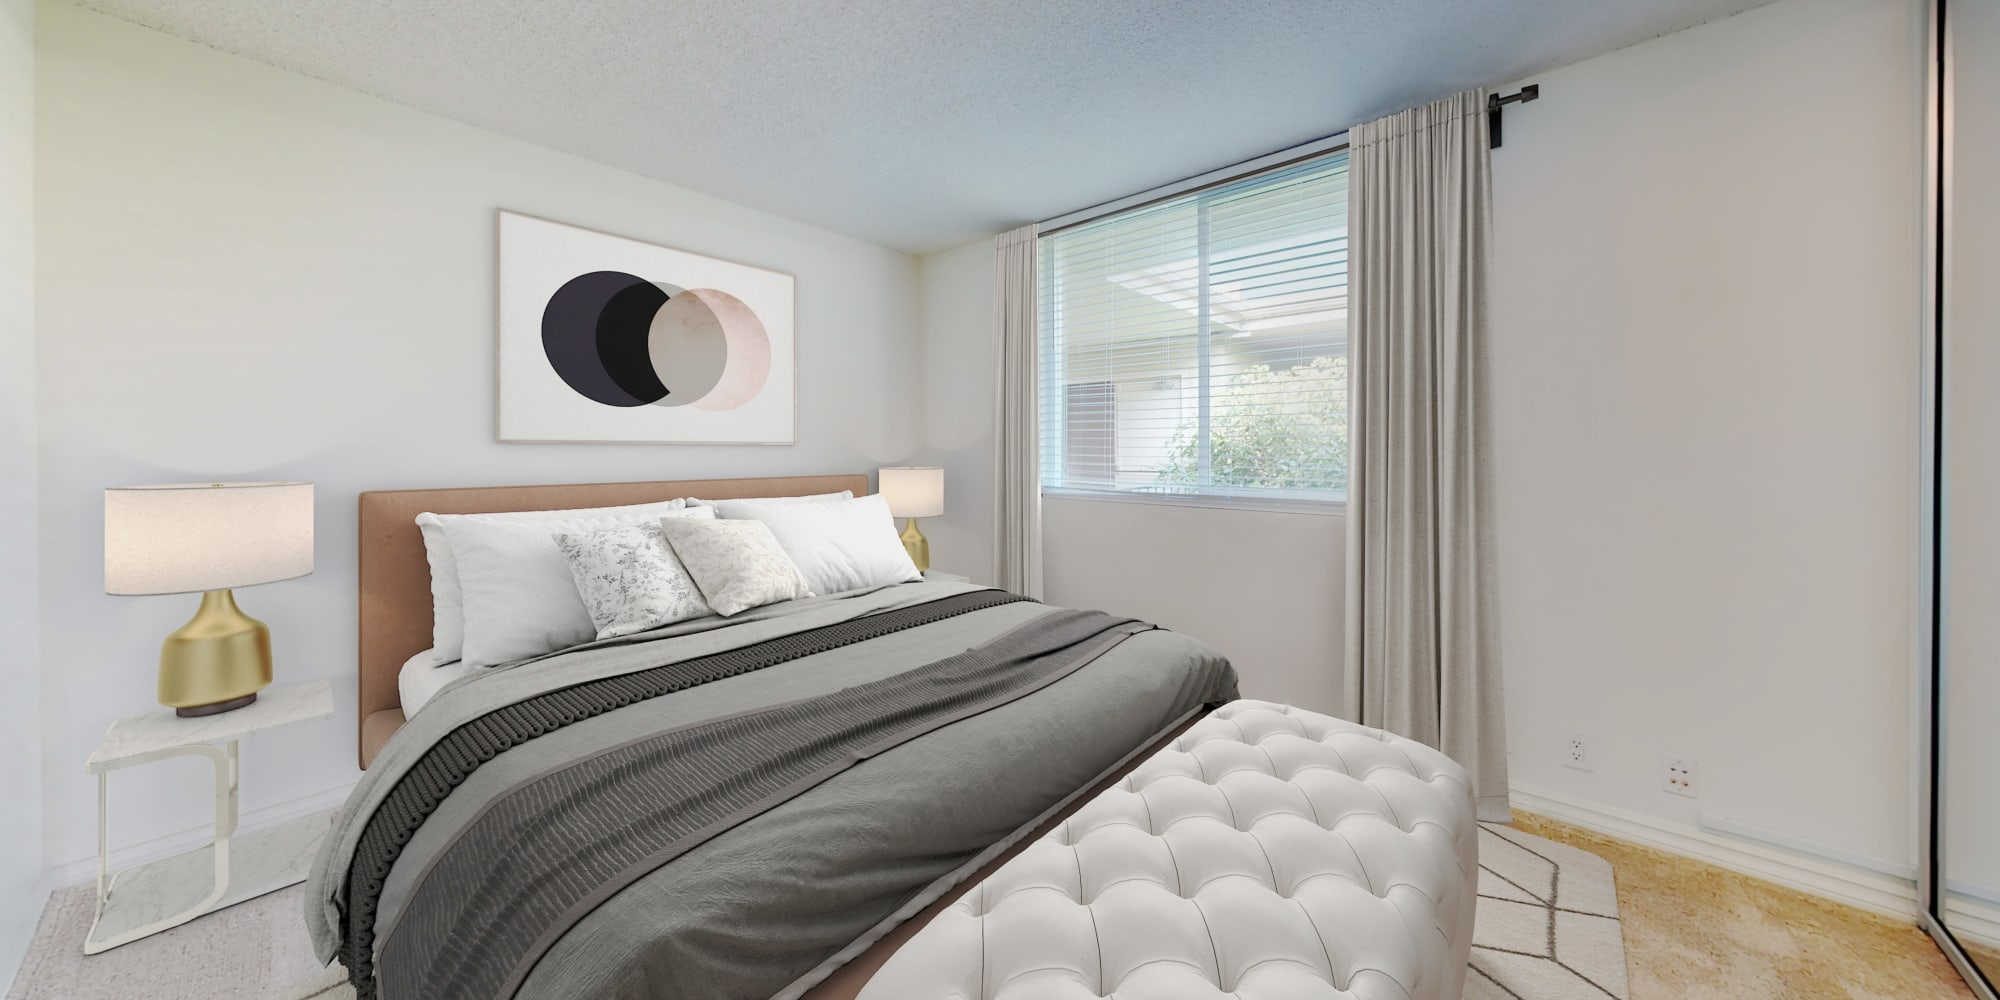 Bedroom in a two-bedroom apartment home at Sunset Barrington Gardens in Los Angeles, California